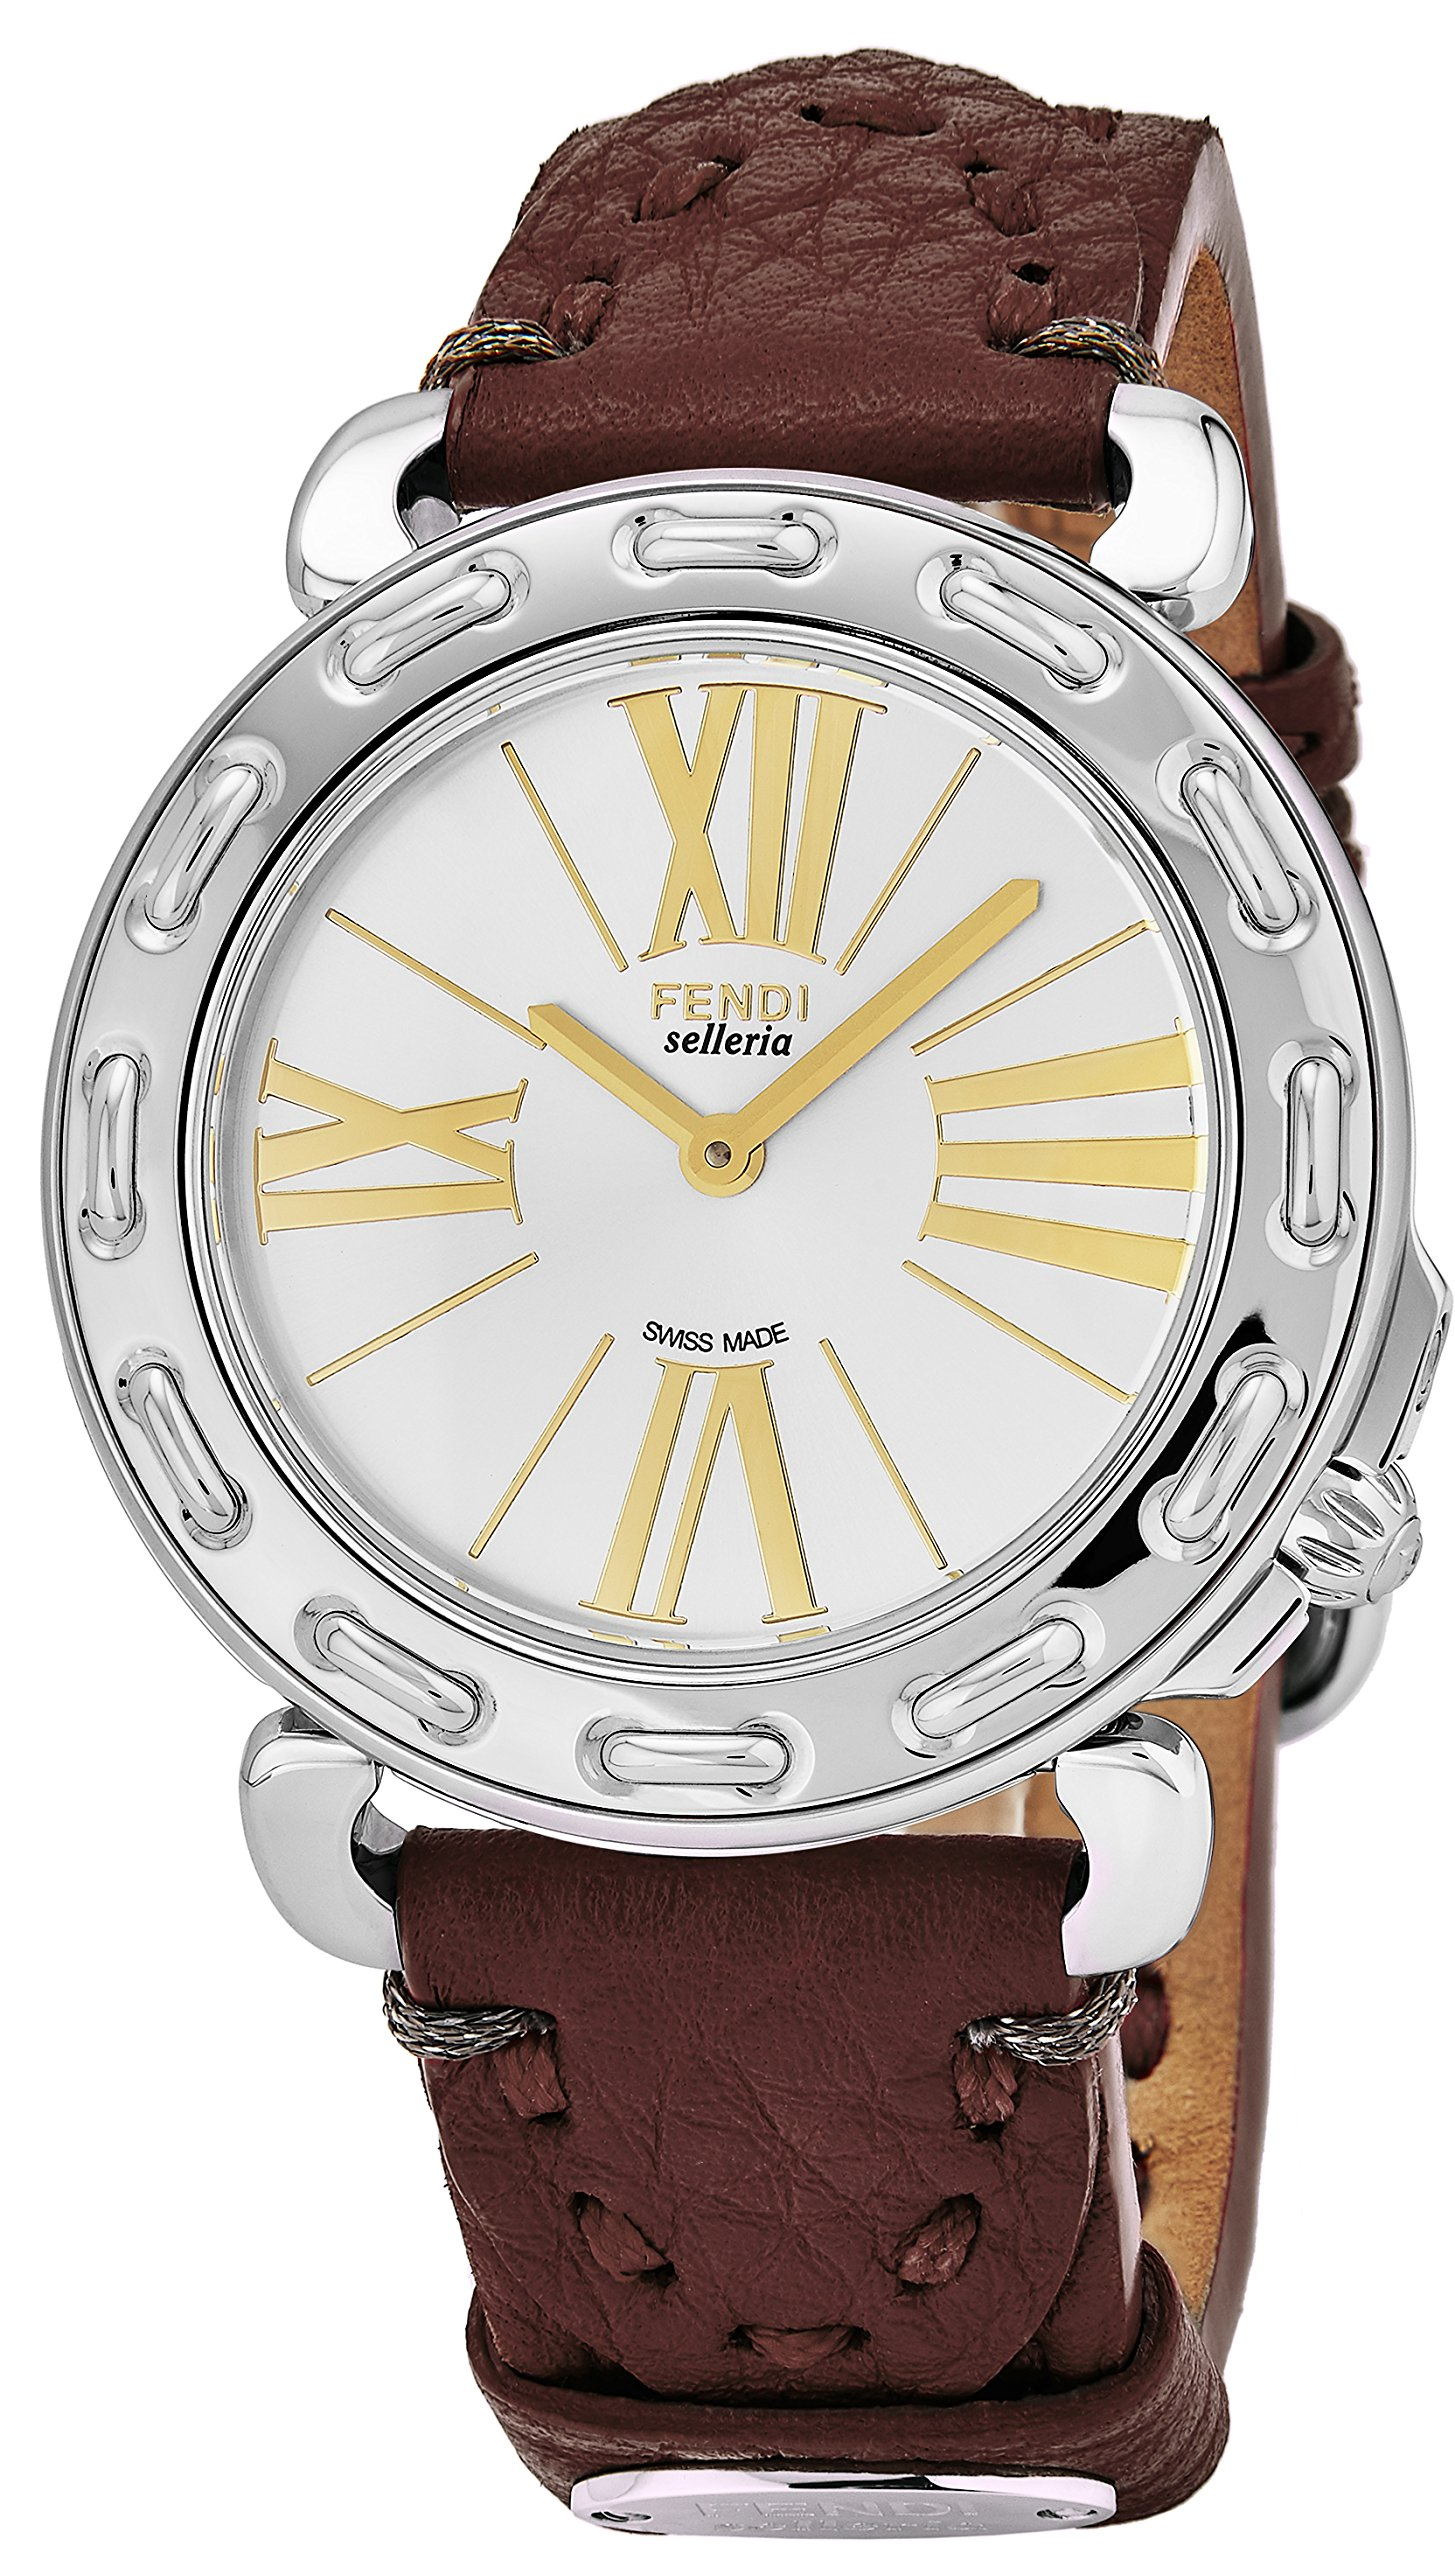 Fendi Selleria Womens Stainless Steel Swiss Fashion Watch with Selleria Horse Logo on Back - Silver Face Brown Leather Strap Dress Watch For Women with Interchangeable Band F81236H-SS18RL7S